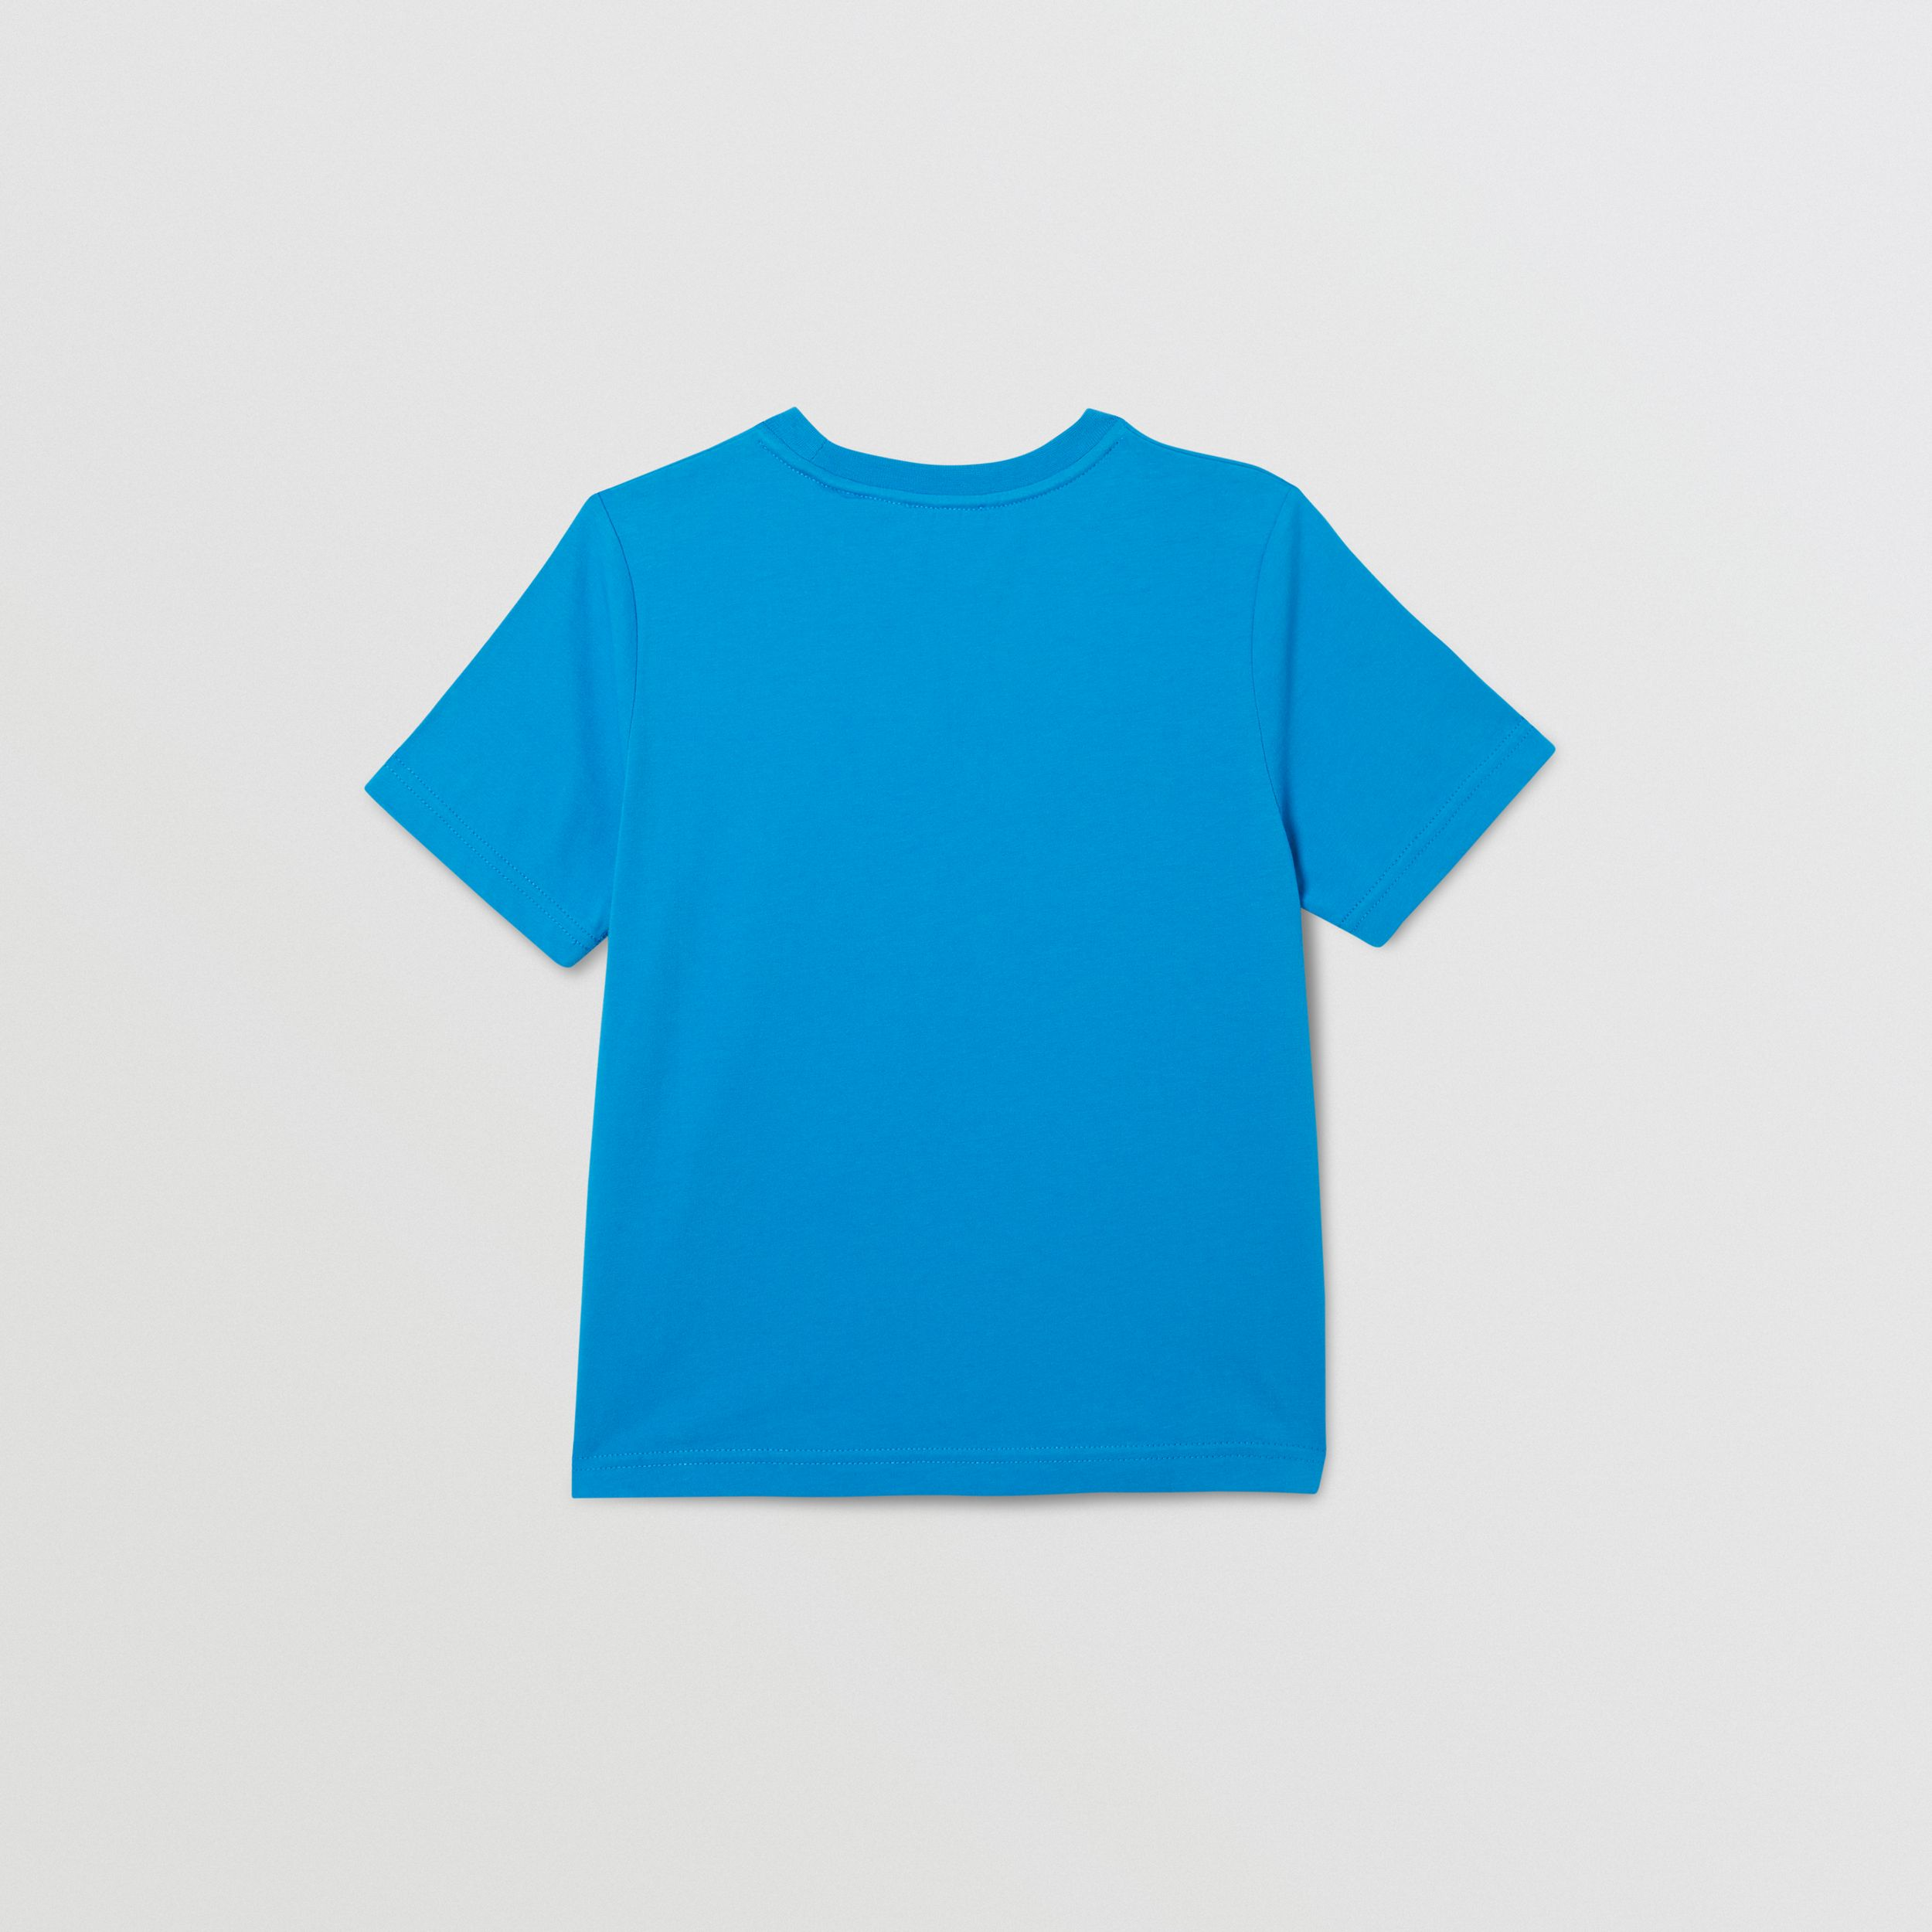 Logo Graphic Print Cotton T-shirt in Cerulean Blue | Burberry - 4